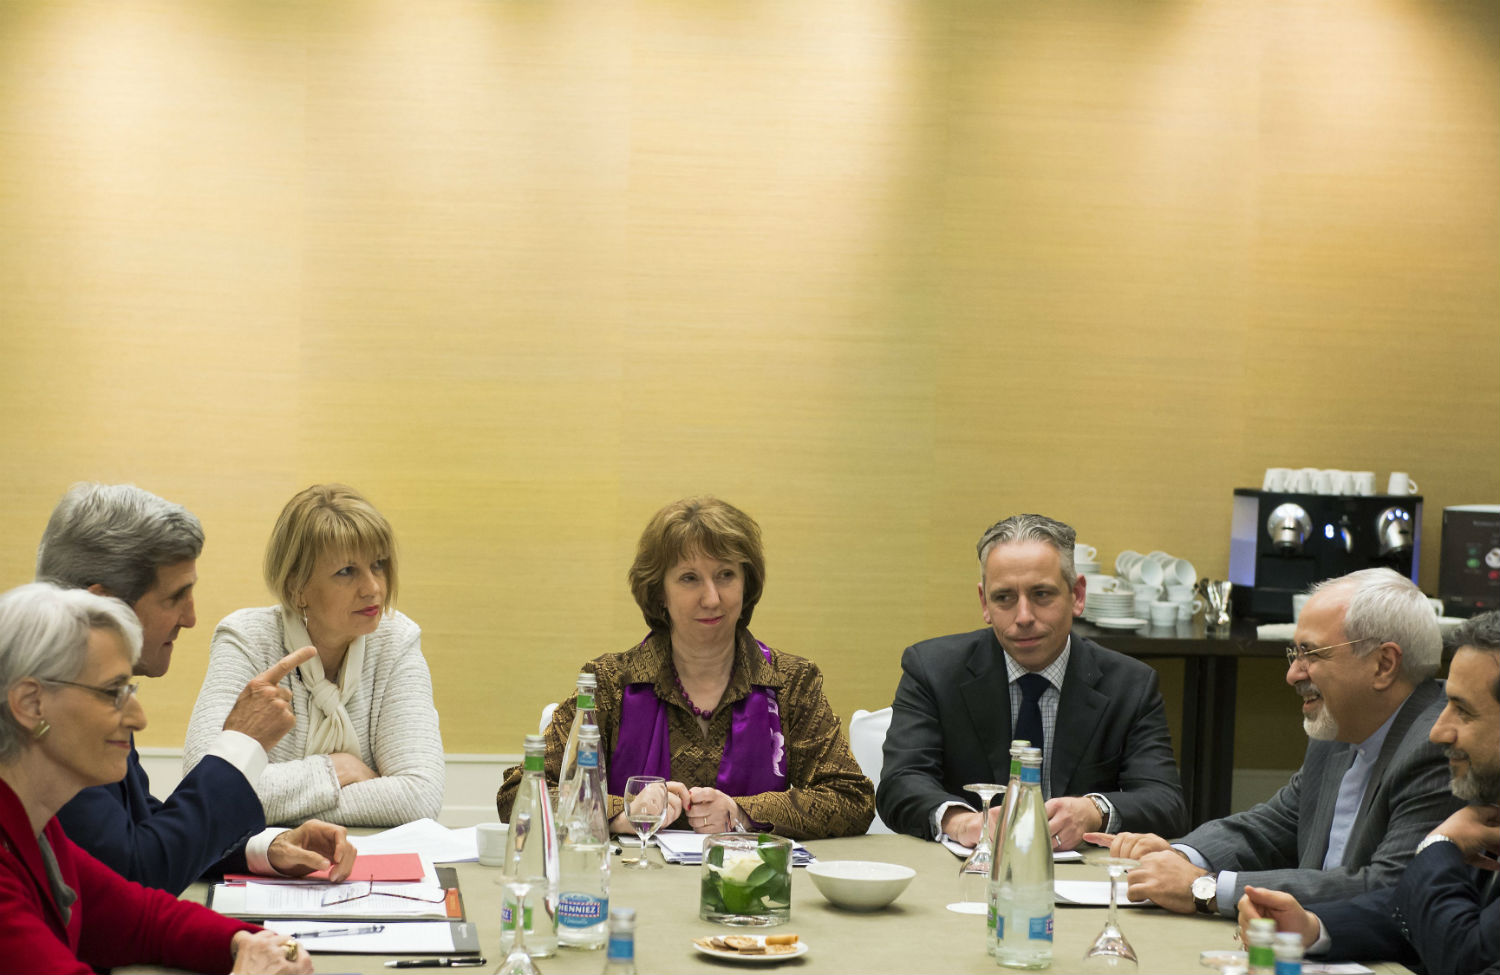 pMeeting-at-Iran-nuclear-talks-in-Genevap